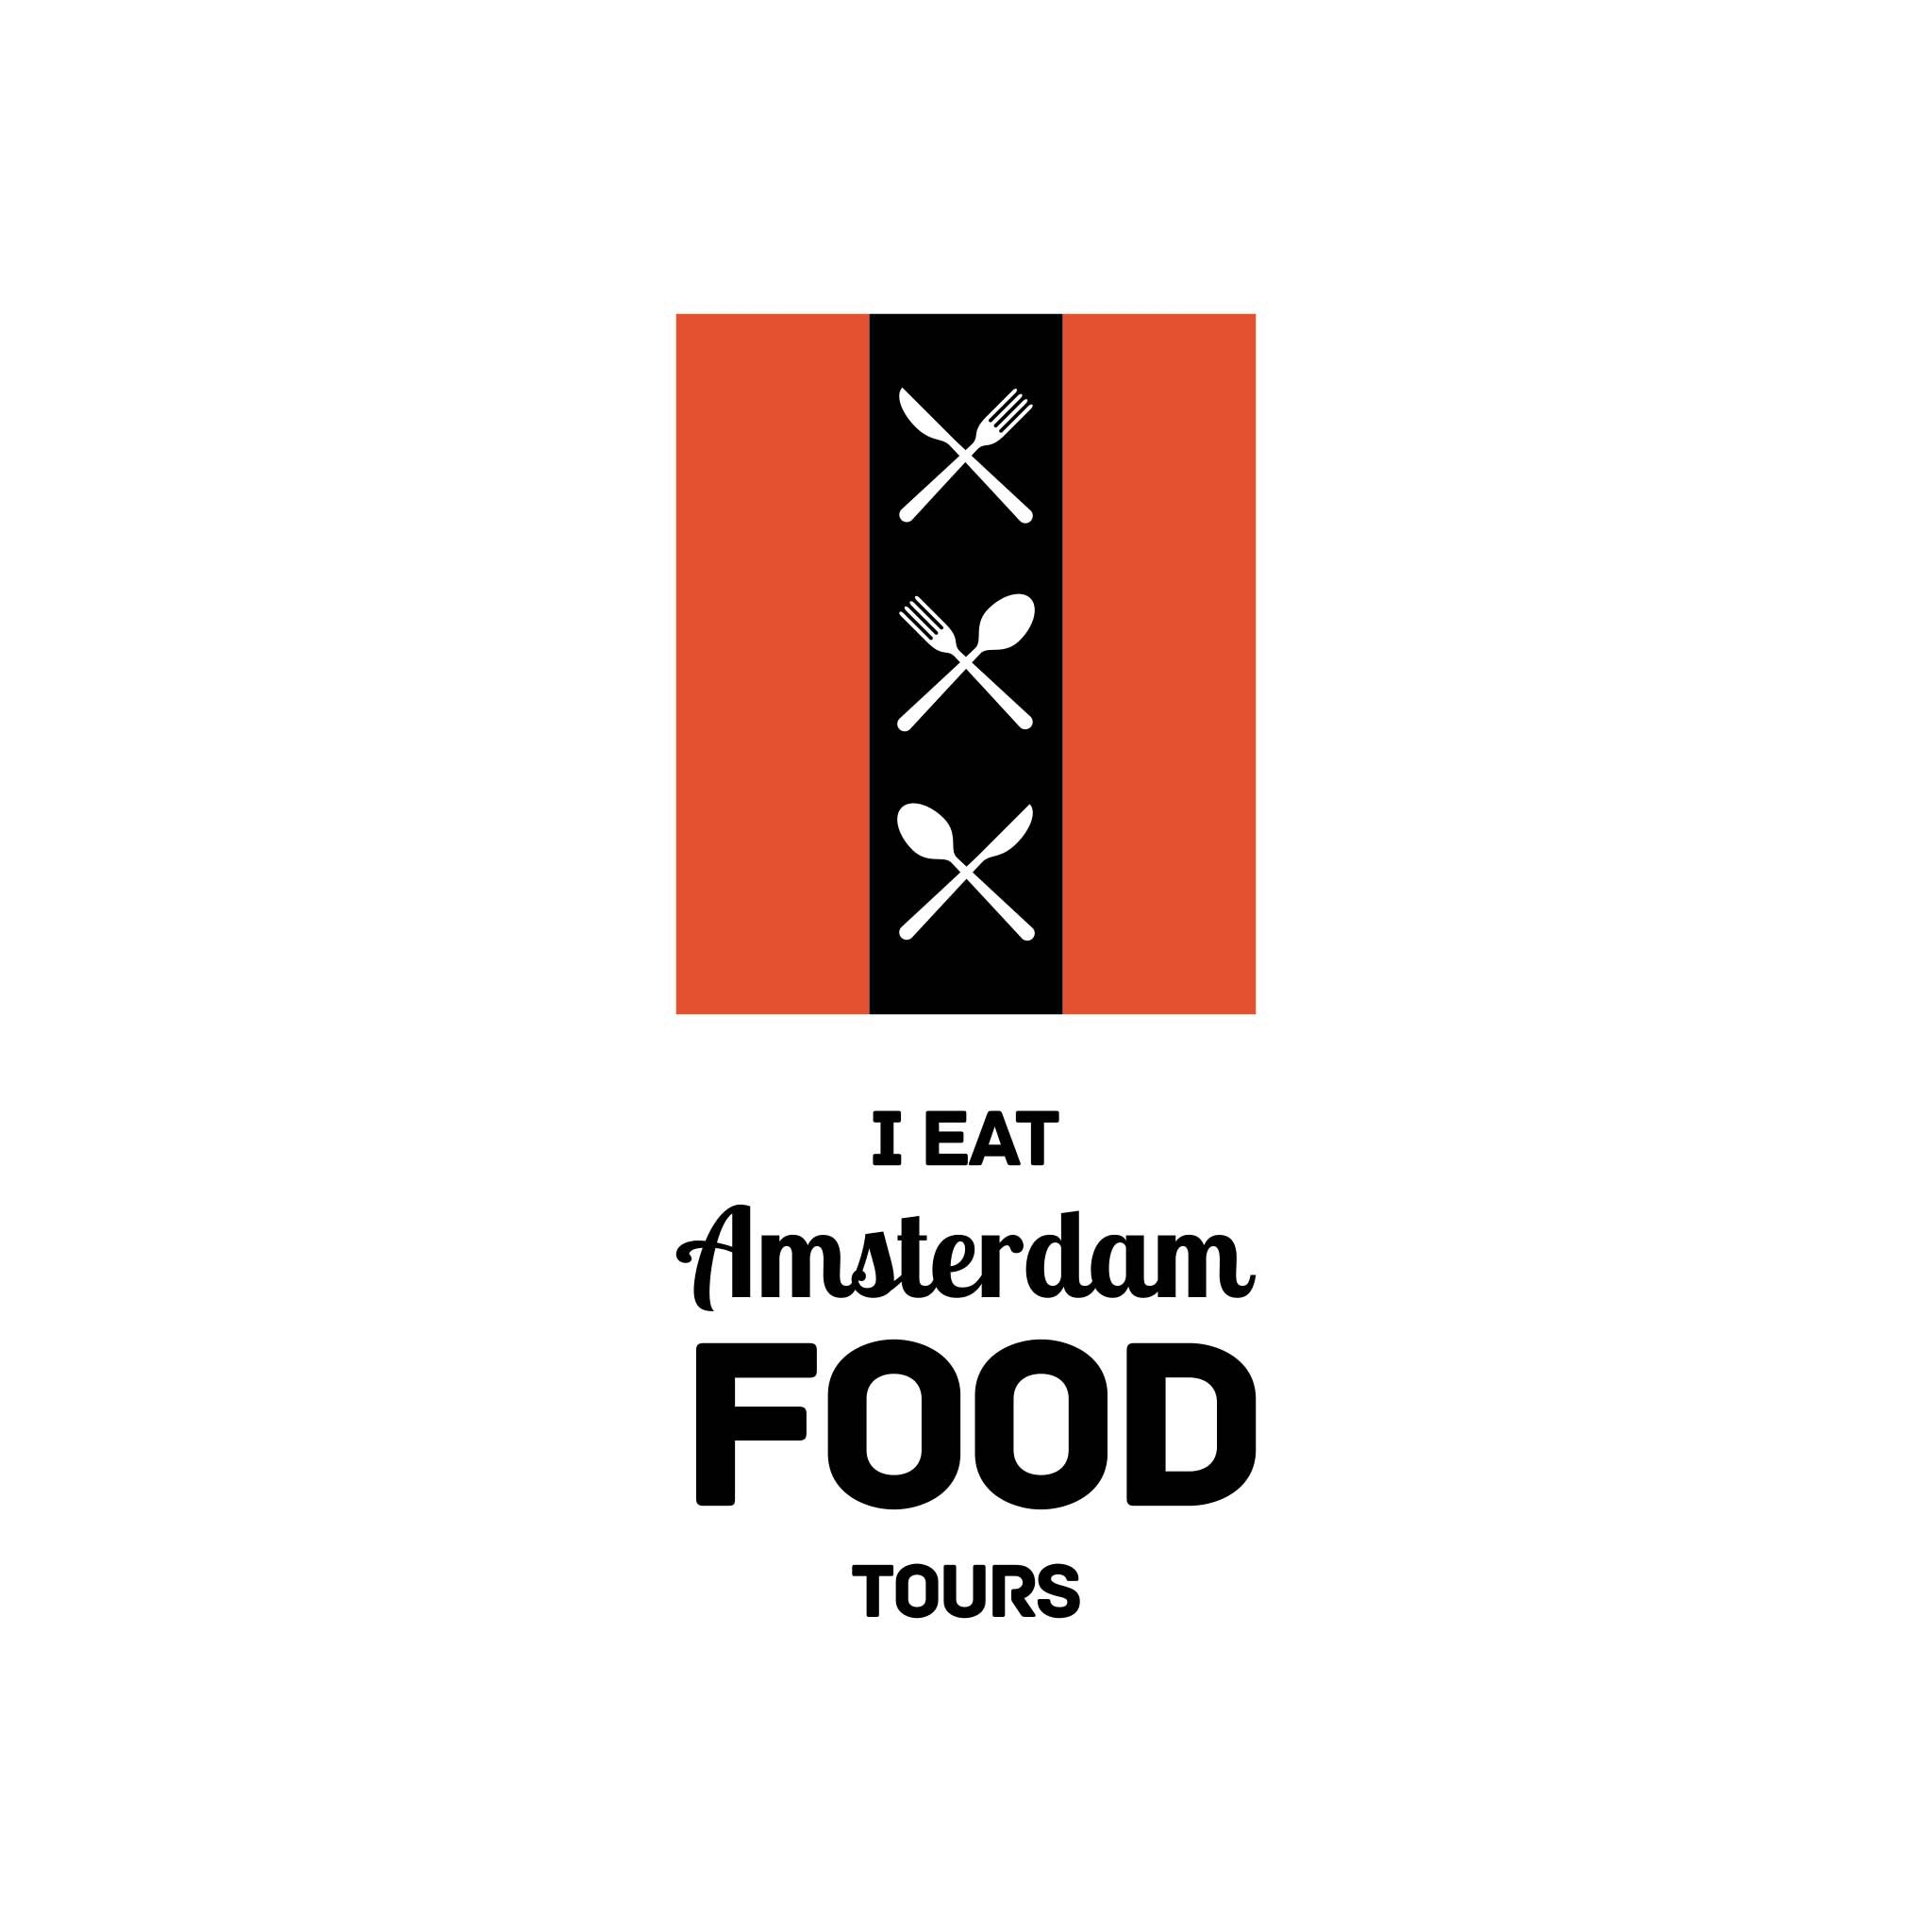 Create a logo that will stimulate the taste buds as well as the eye for I Eat Amsterdam food tours.